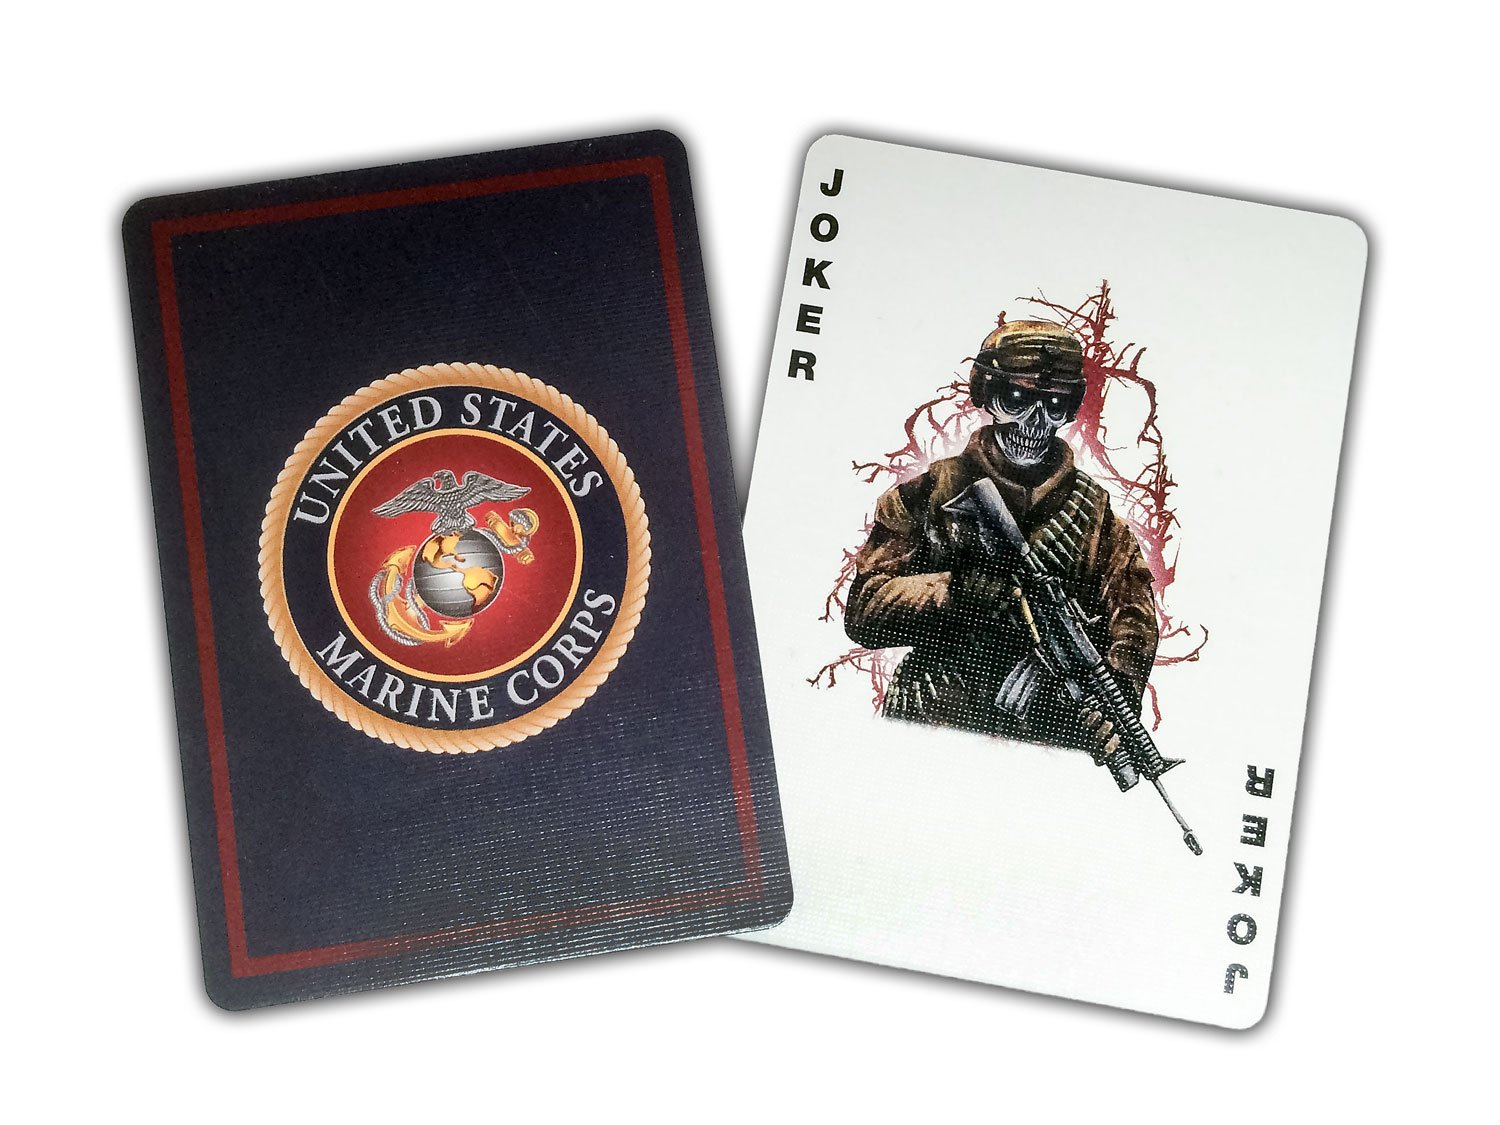 Amazon.com: US Marine Corps Playing Cards: Sports & Outdoors